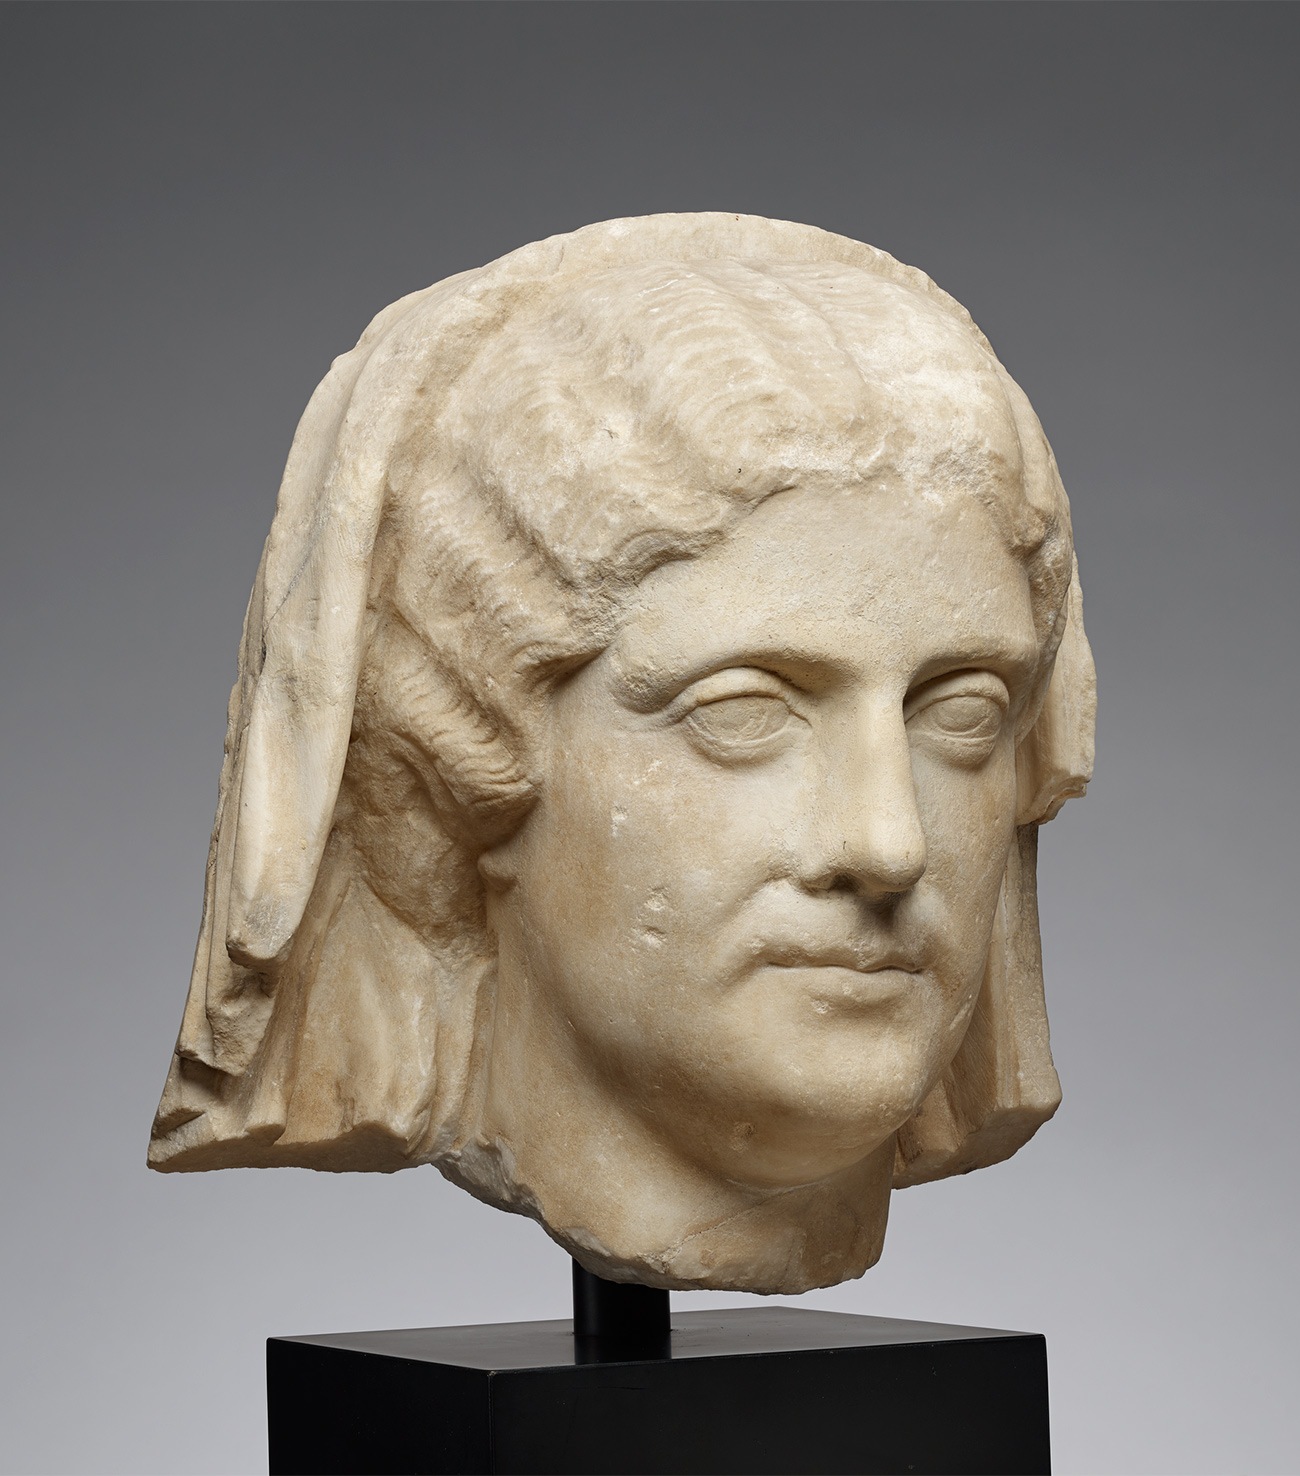 Head of a Veiled Woman / Roman